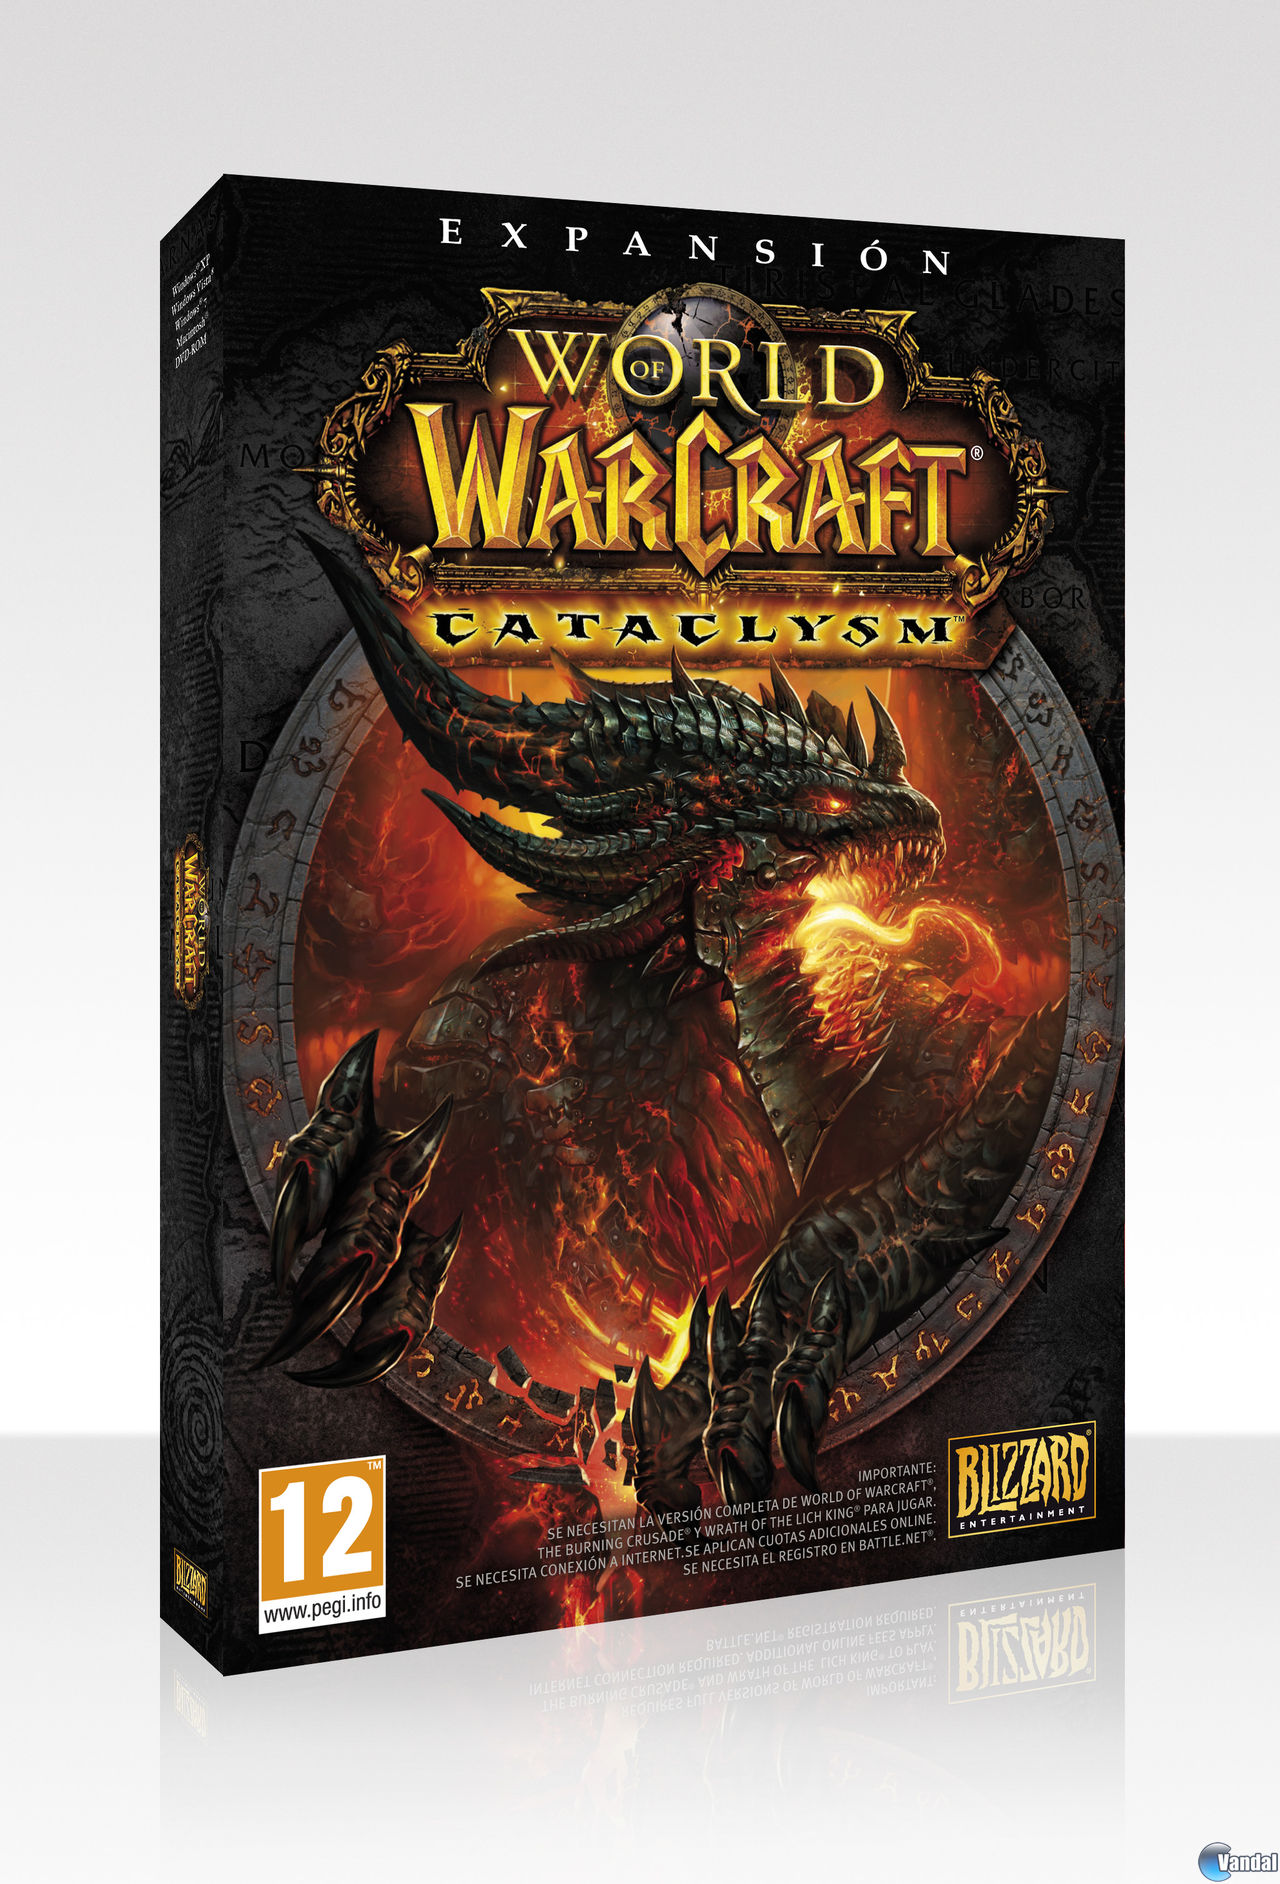 World of Warcraft: Cataclysm la edición de coleccionista